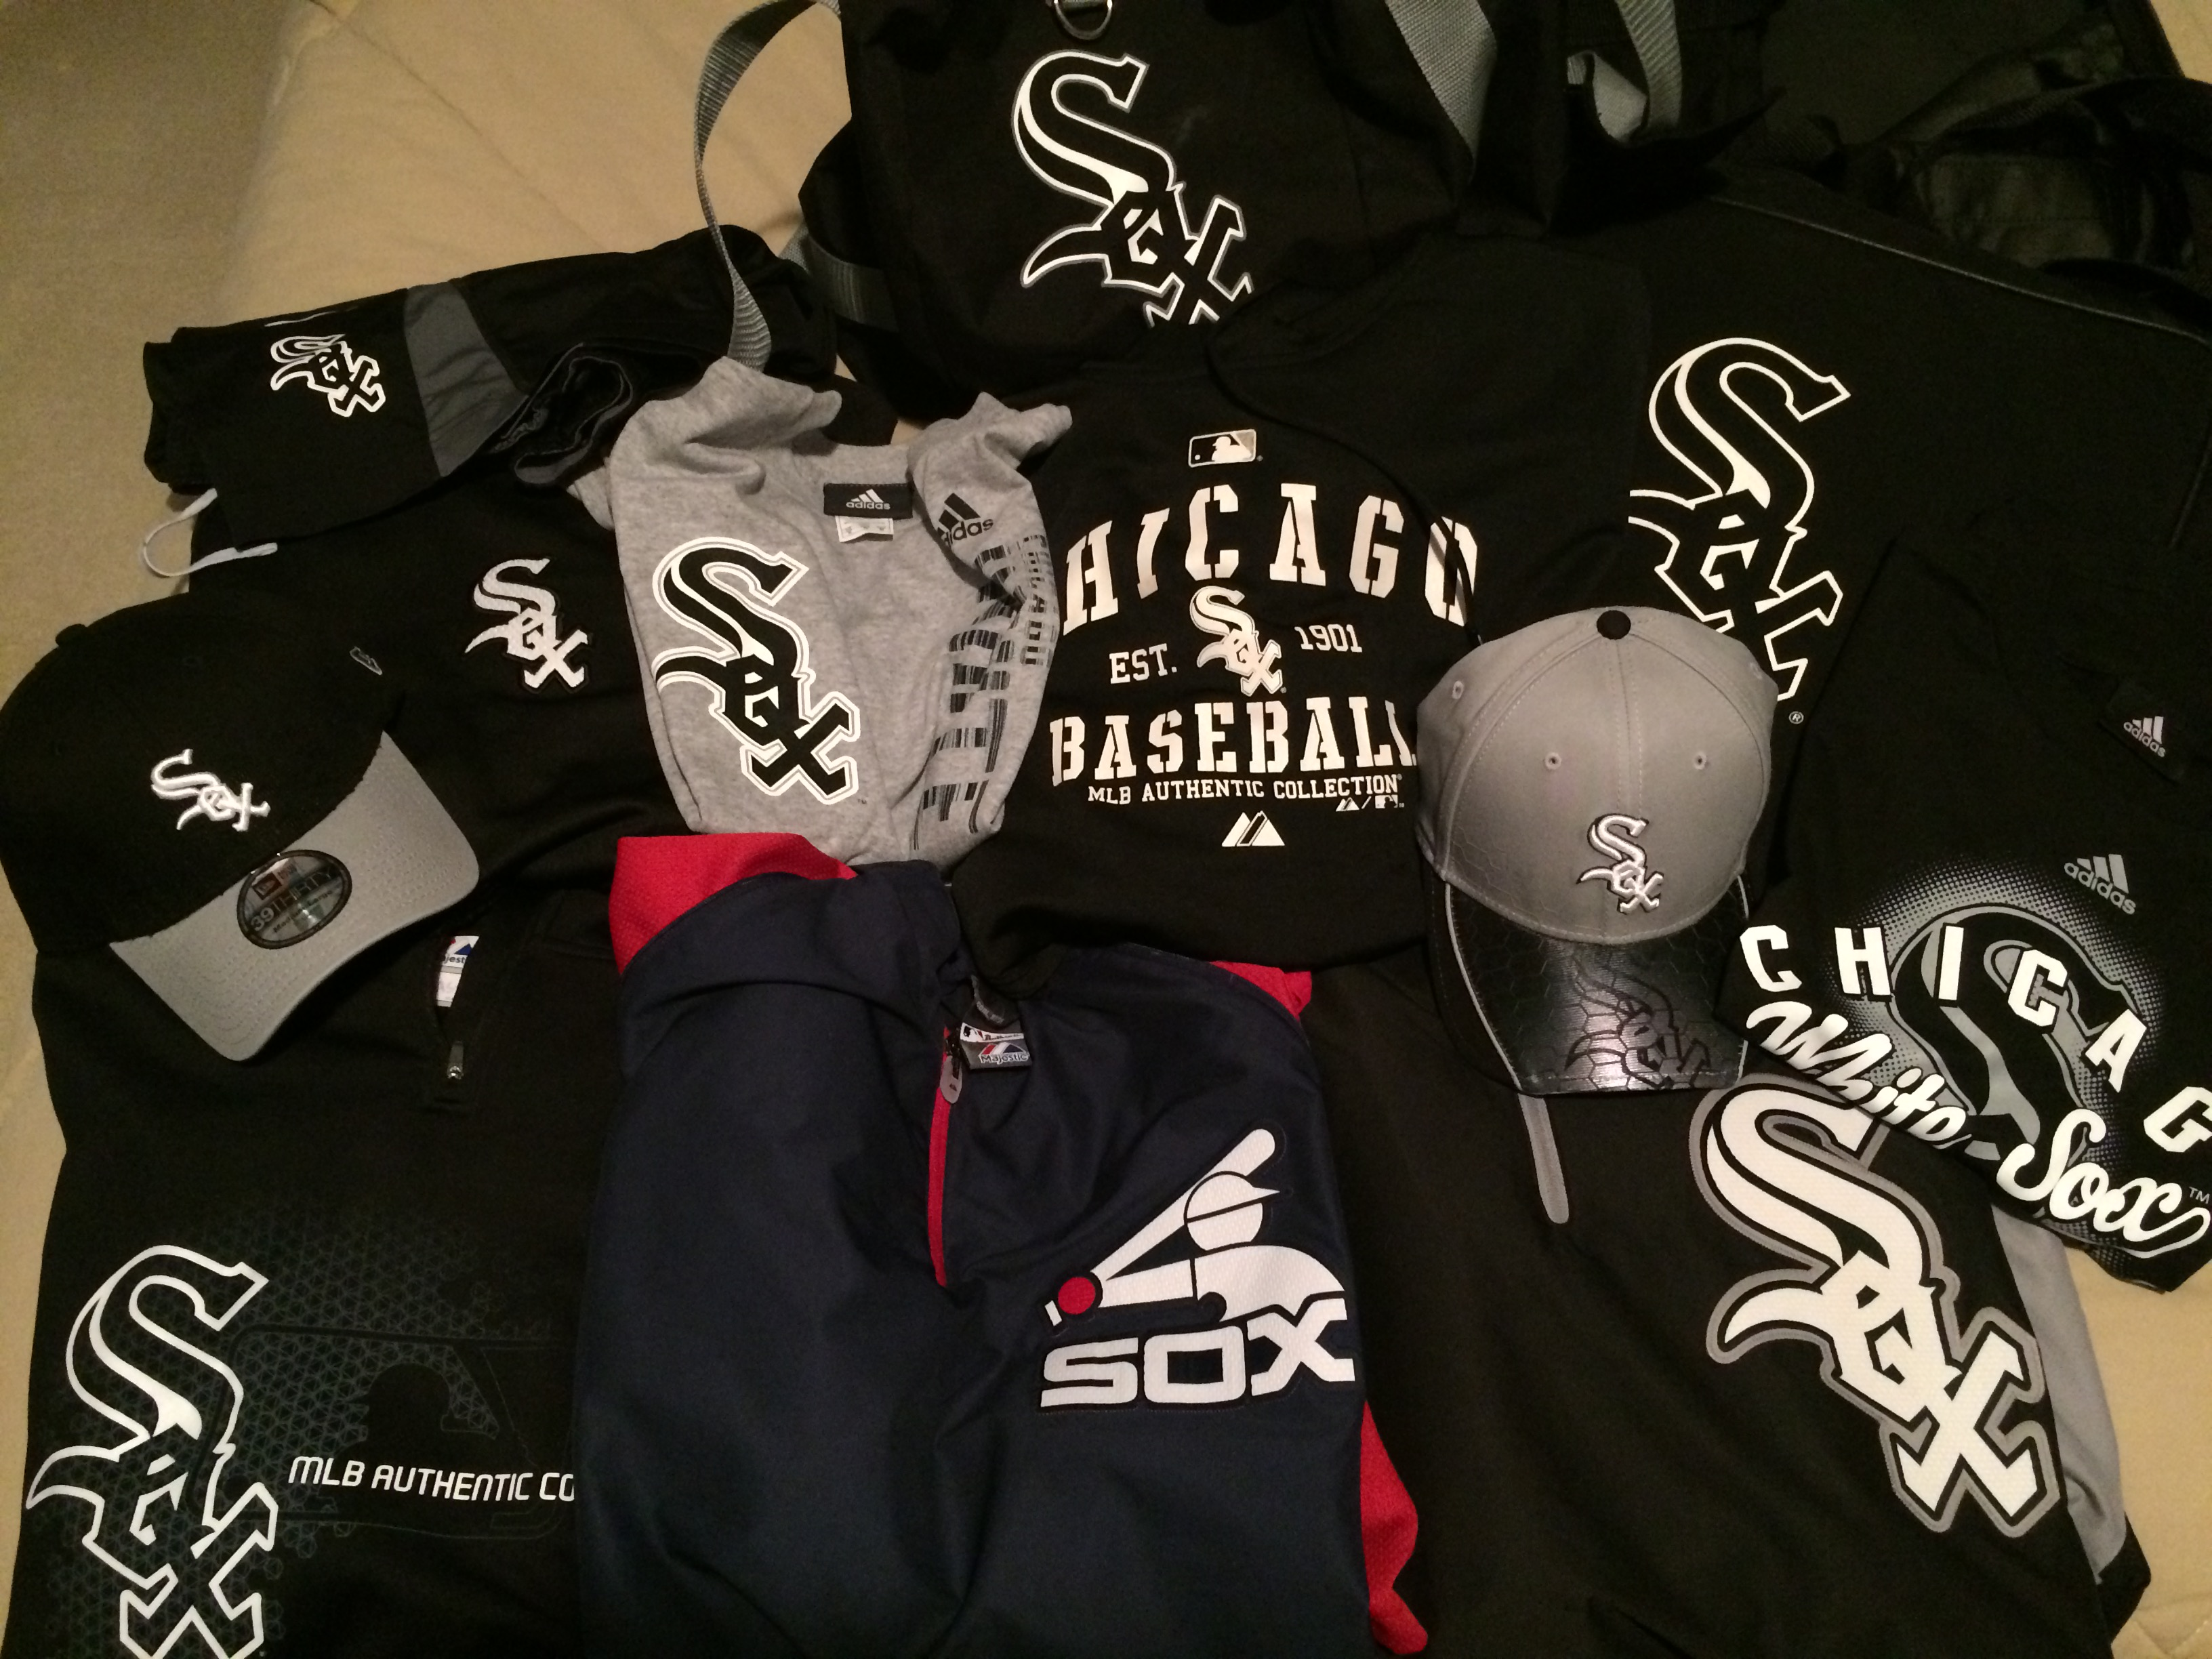 More White Sox